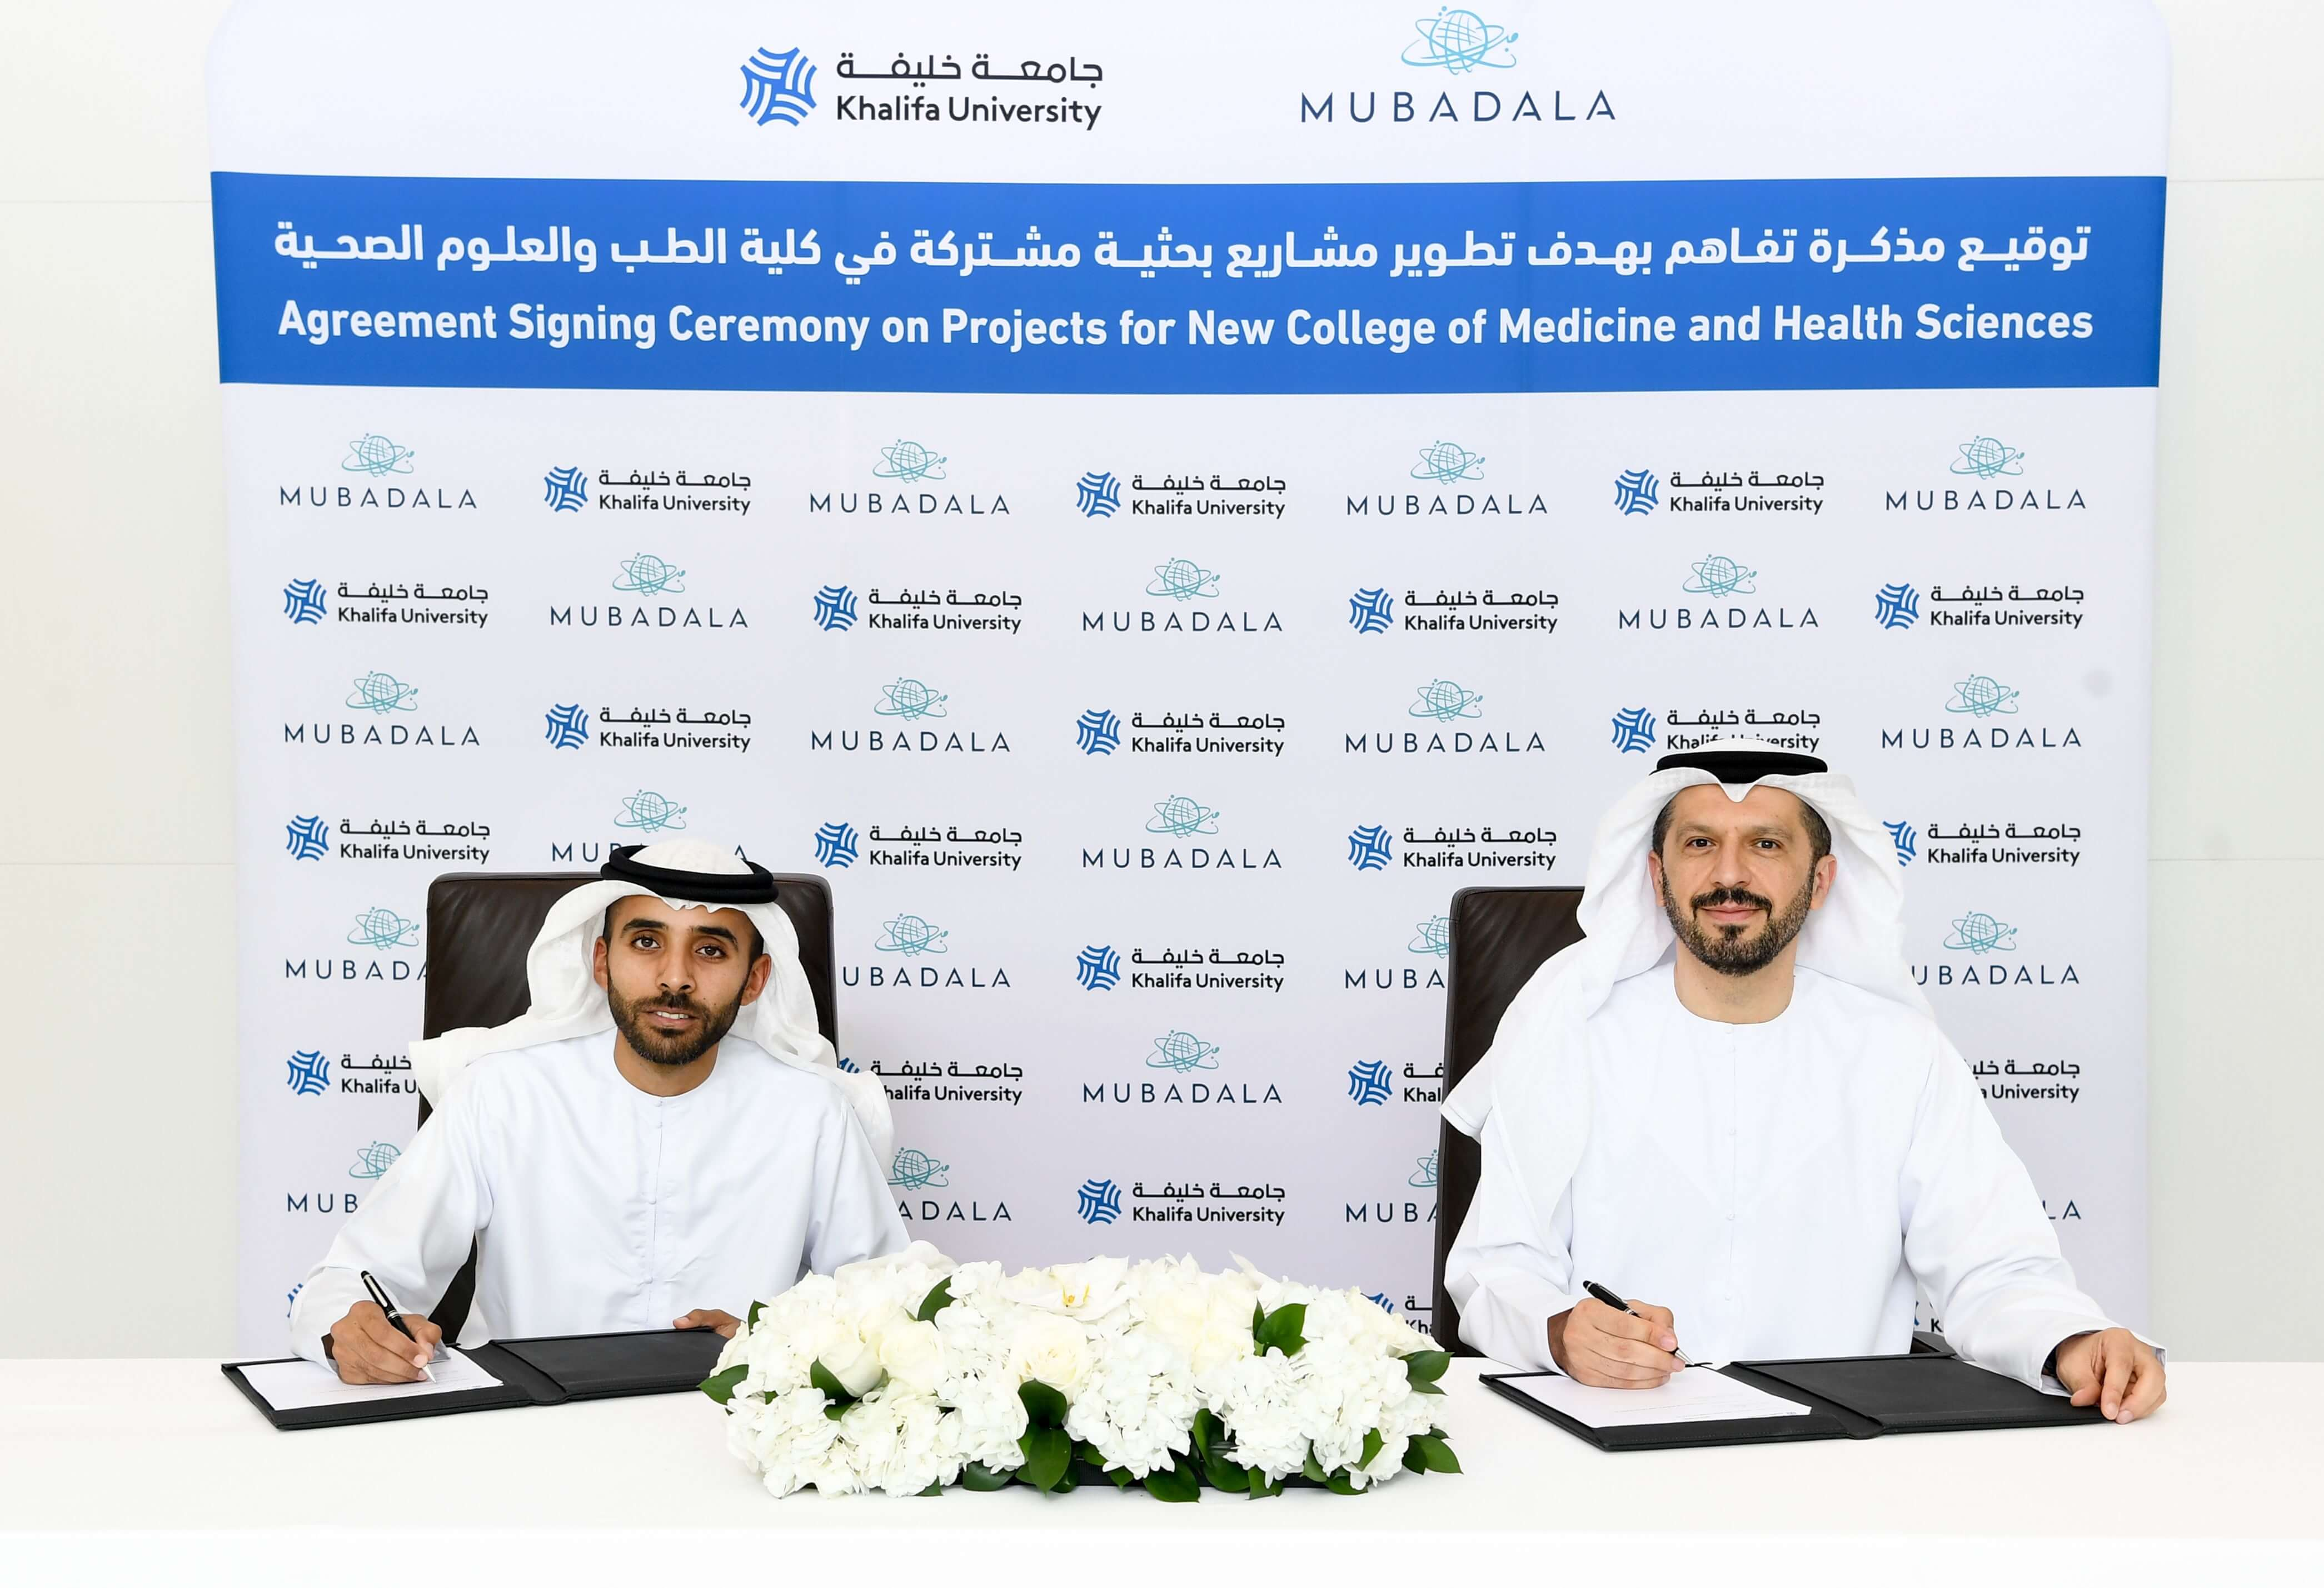 Khalifa University and Mubadala Collaborate On Projects For New College Of Medicine And Health Sciences